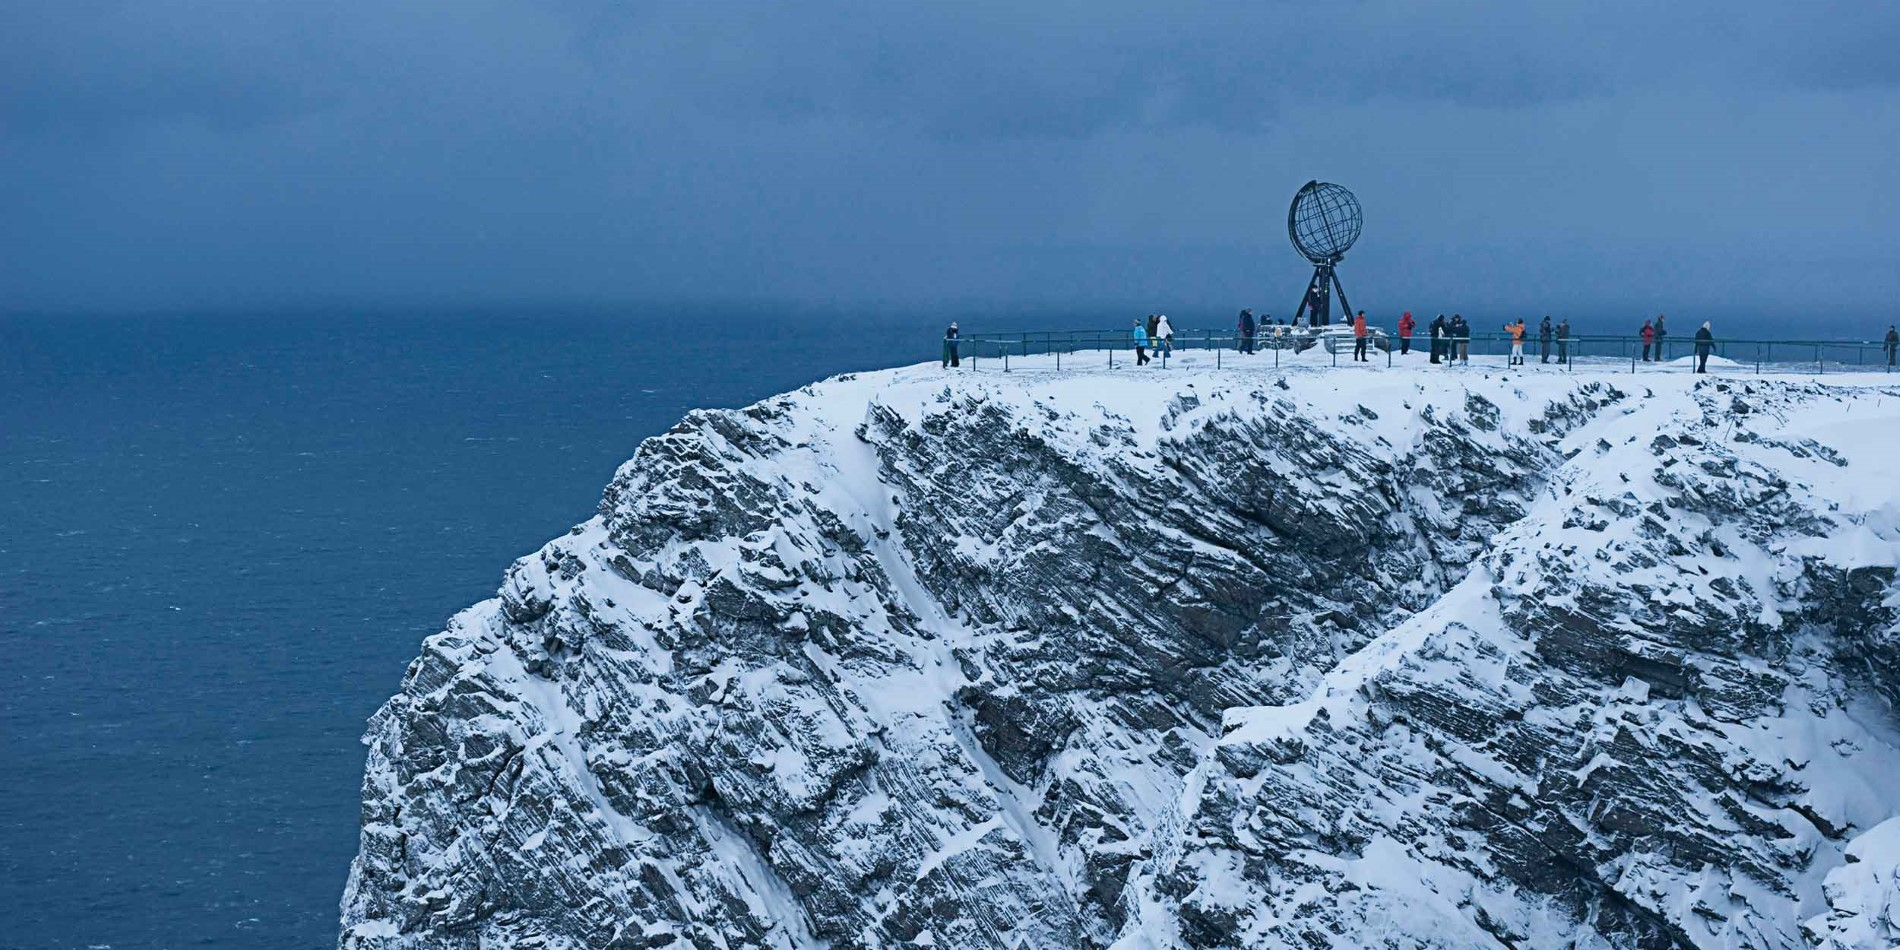 The North Cape in winter